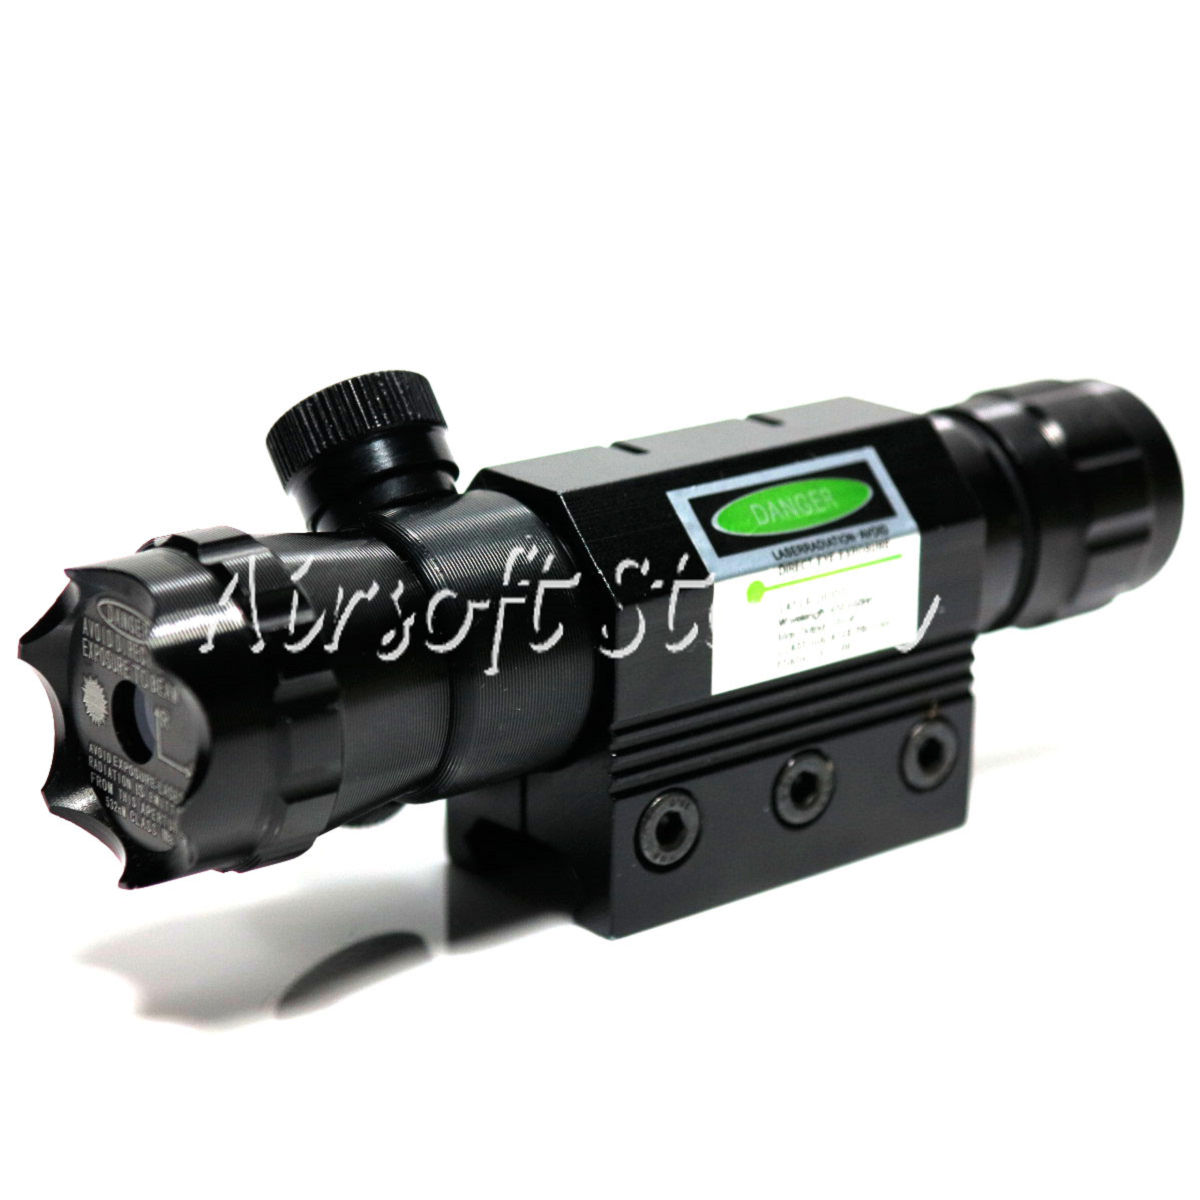 LXGD Tactical Gear Rifle Green Laser Sight Pointer with Barrel & RIS Mount JG-016